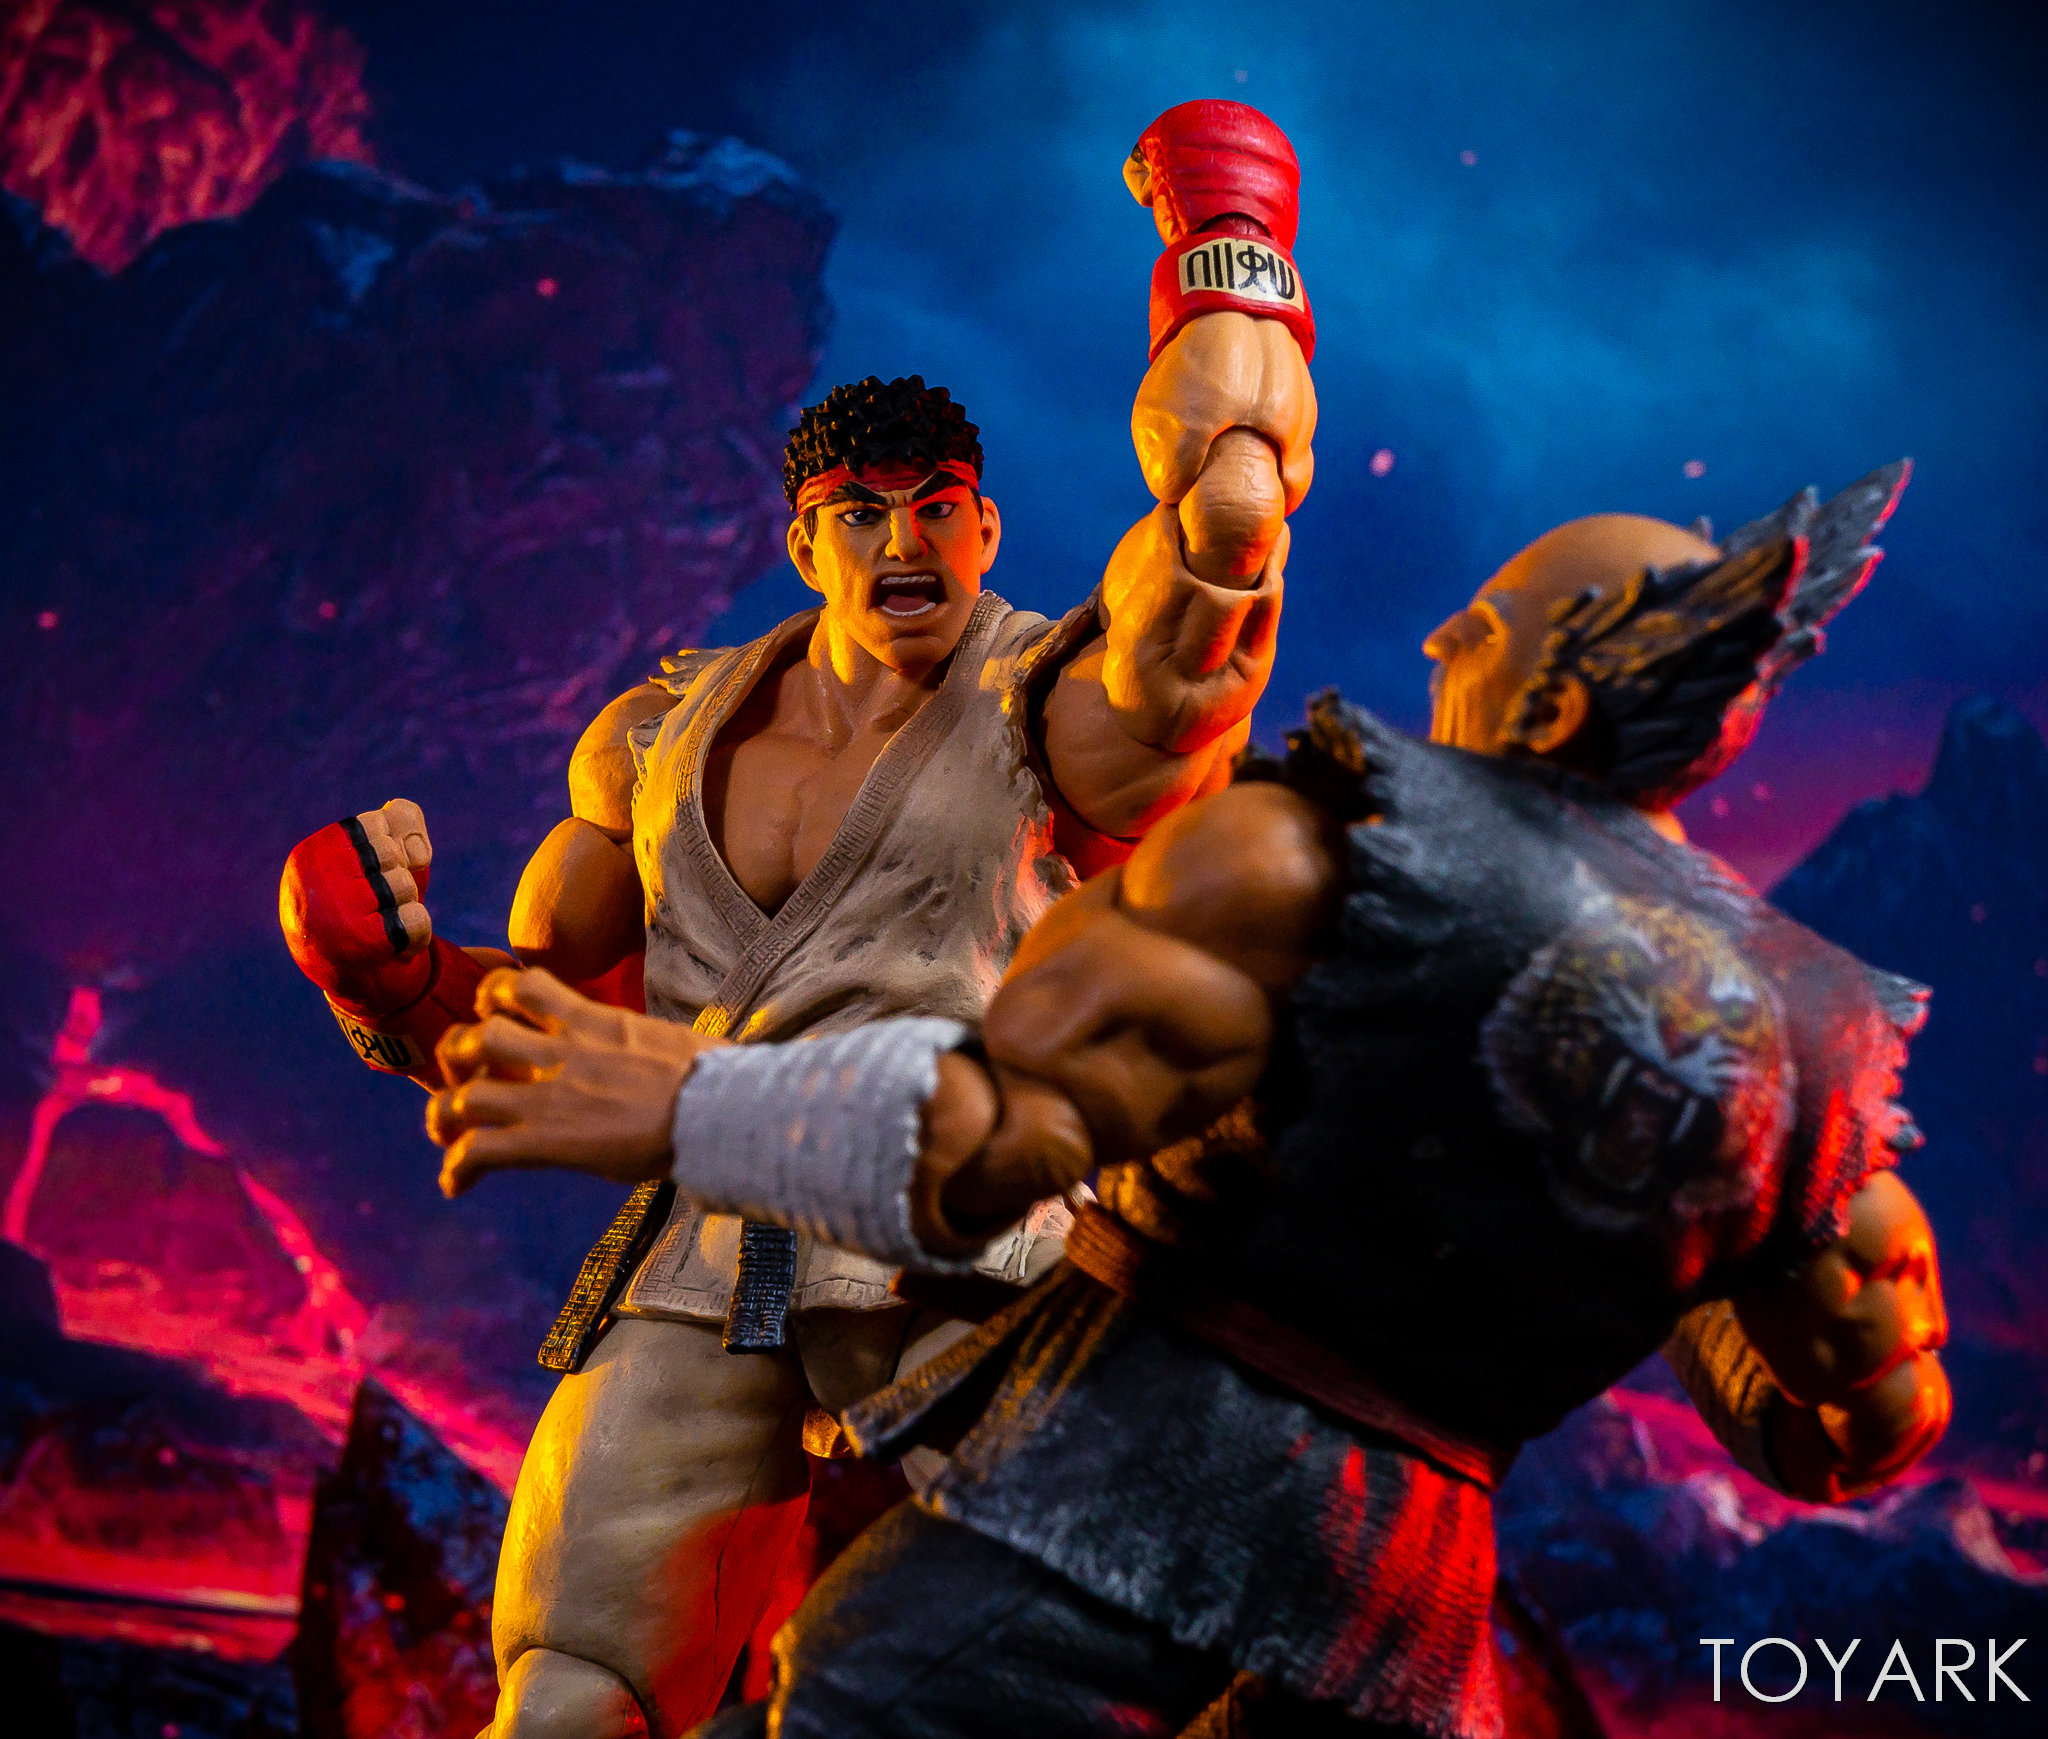 https://news.toyark.com/wp-content/uploads/sites/4/2018/05/Storm-Heihachi-Figure-043.jpg